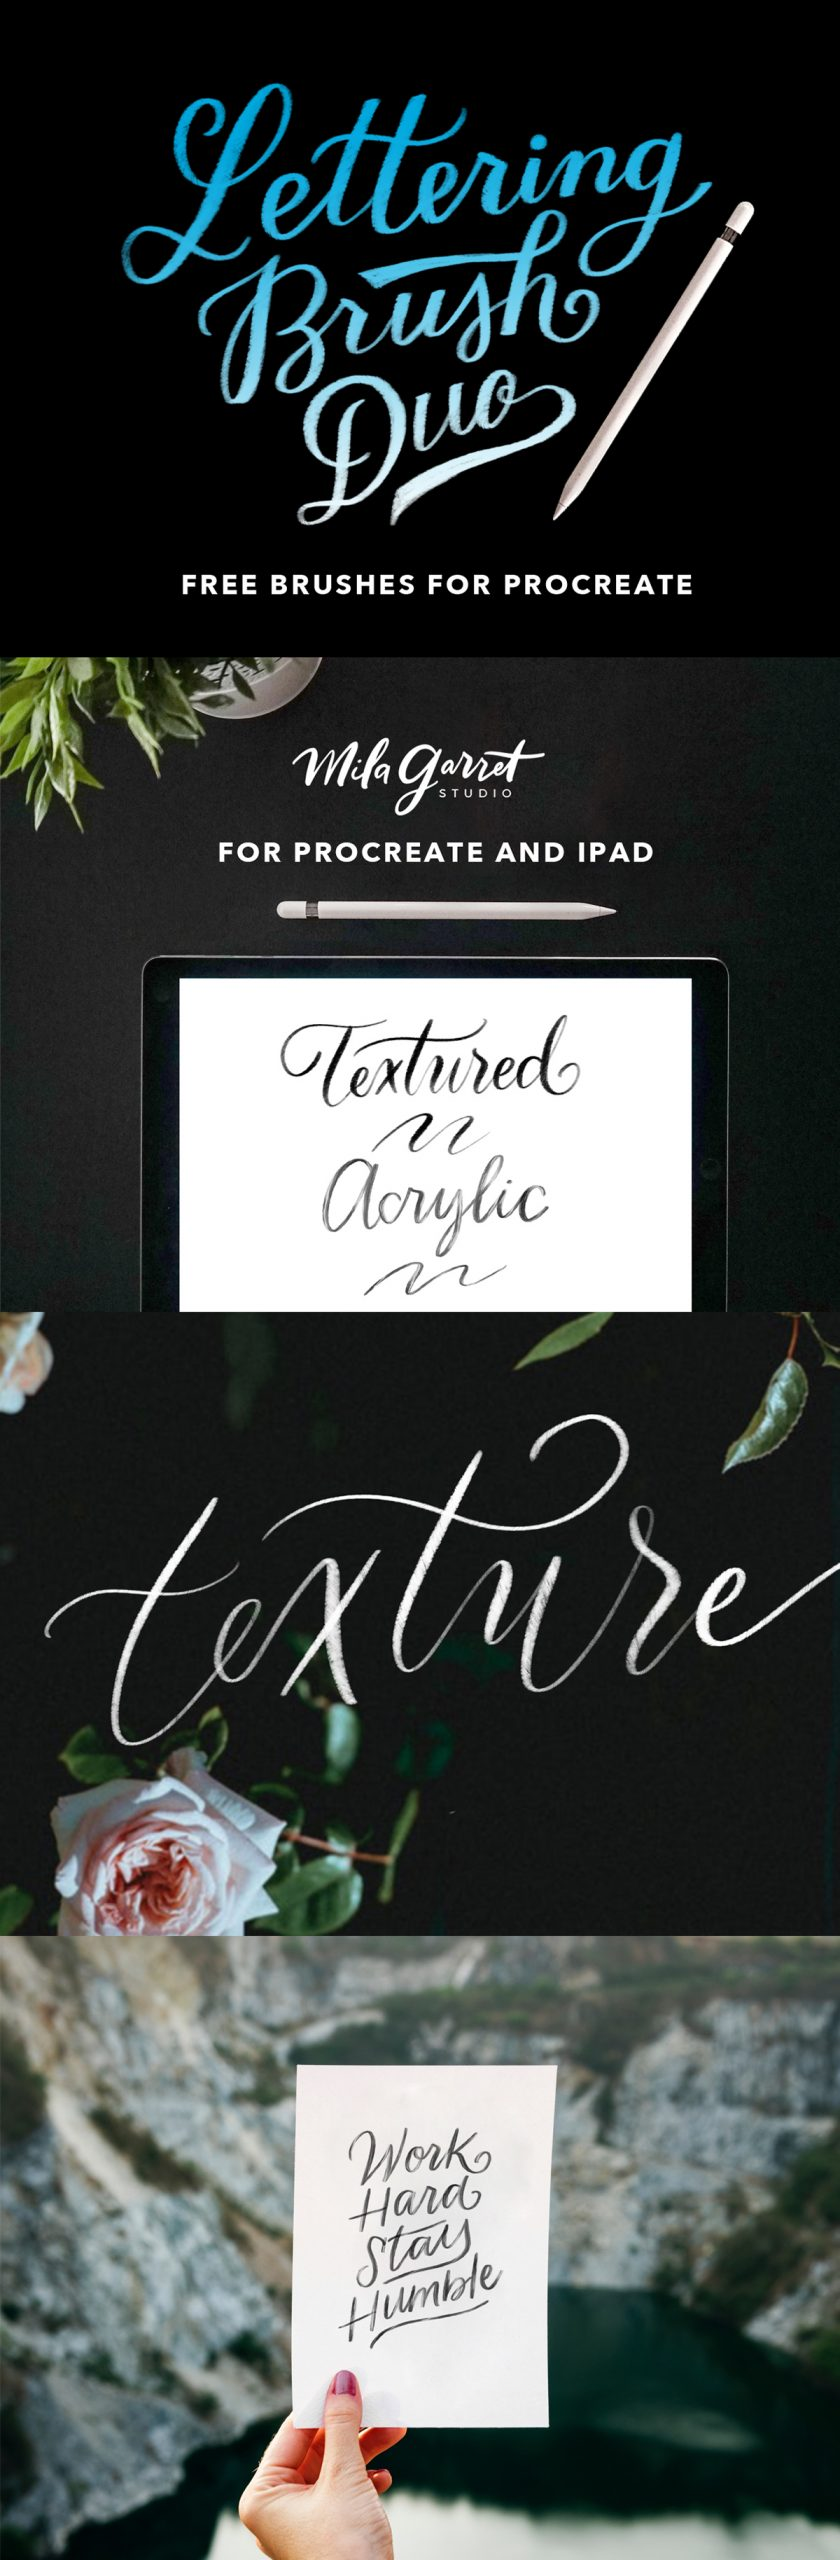 Free Download 2 Style Lettering Procreate Brush, Great quality and easy to use this brushes for your awesome design project. High resolution. 100% free!